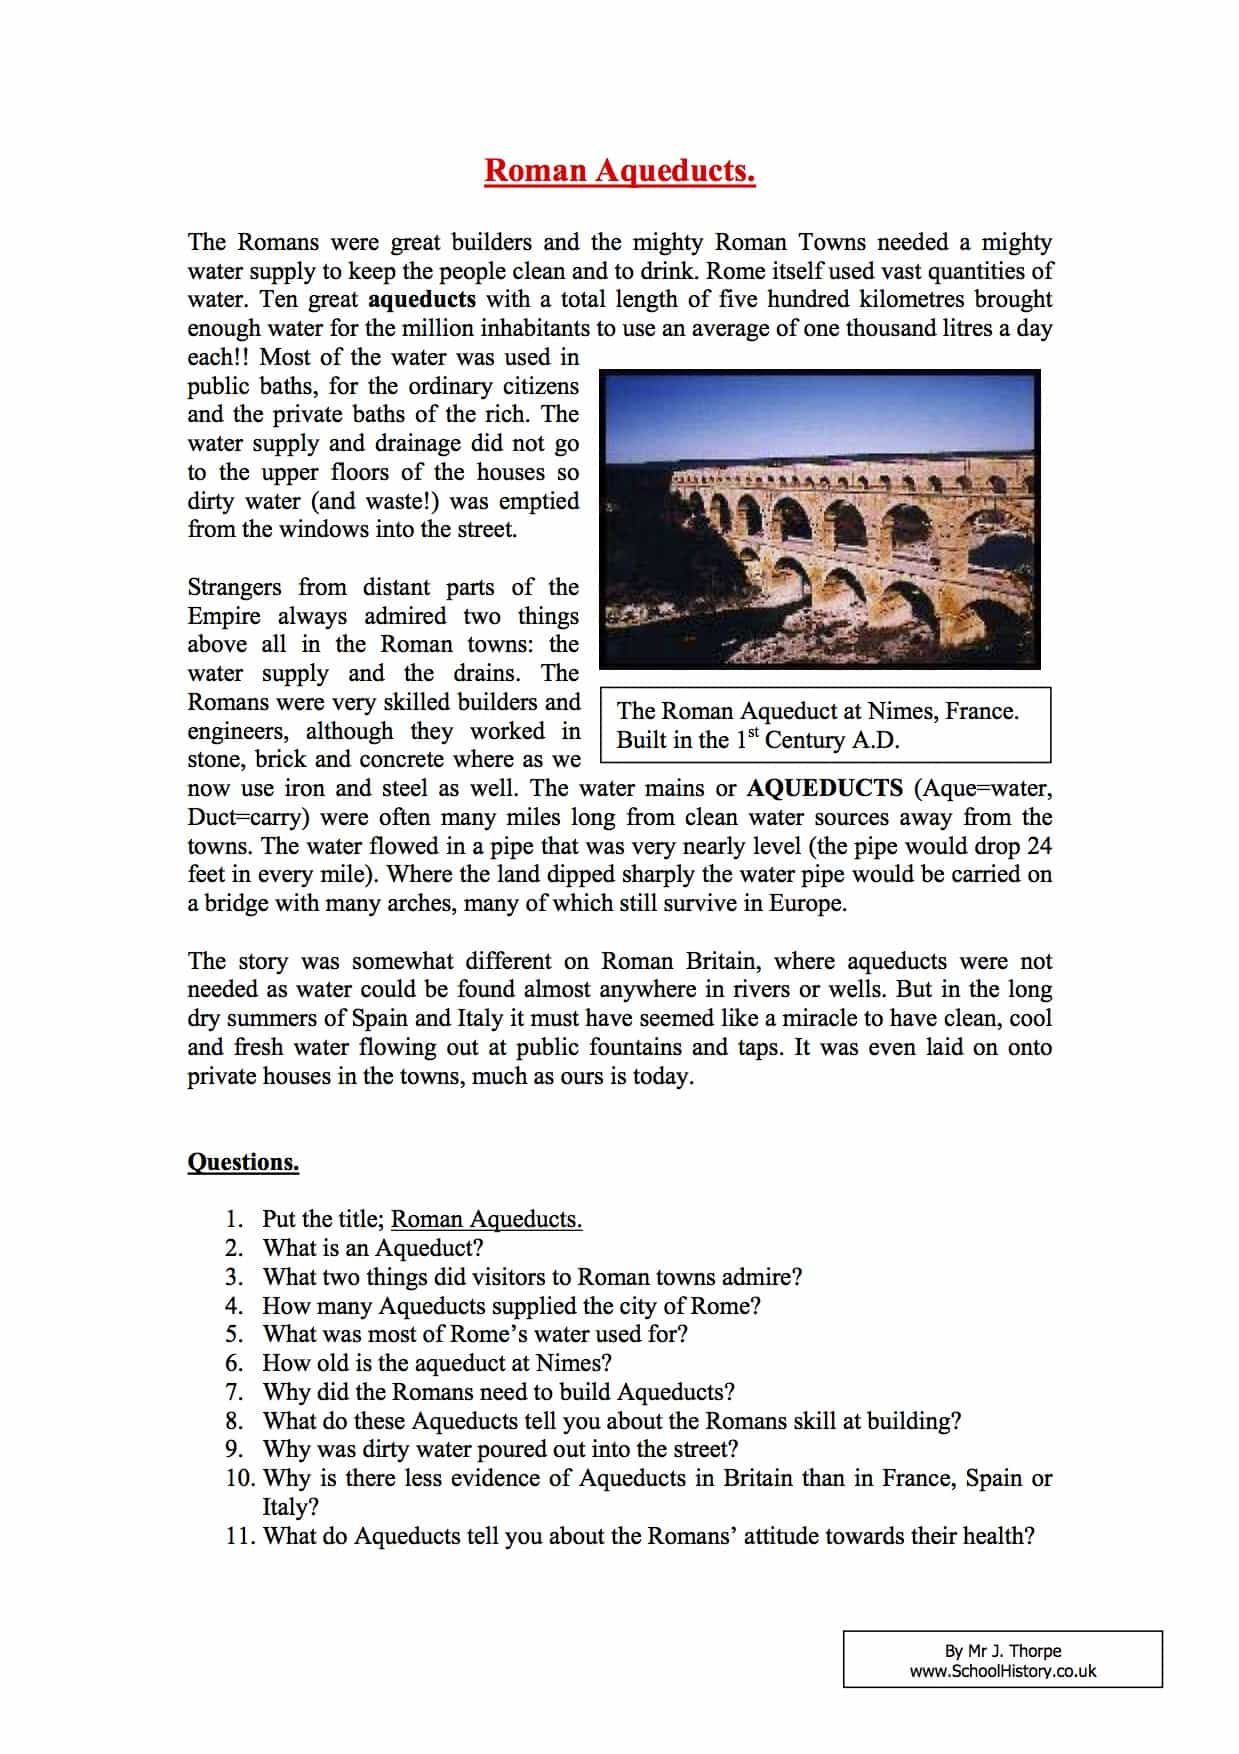 Roman Aqueducts Facts Amp Information